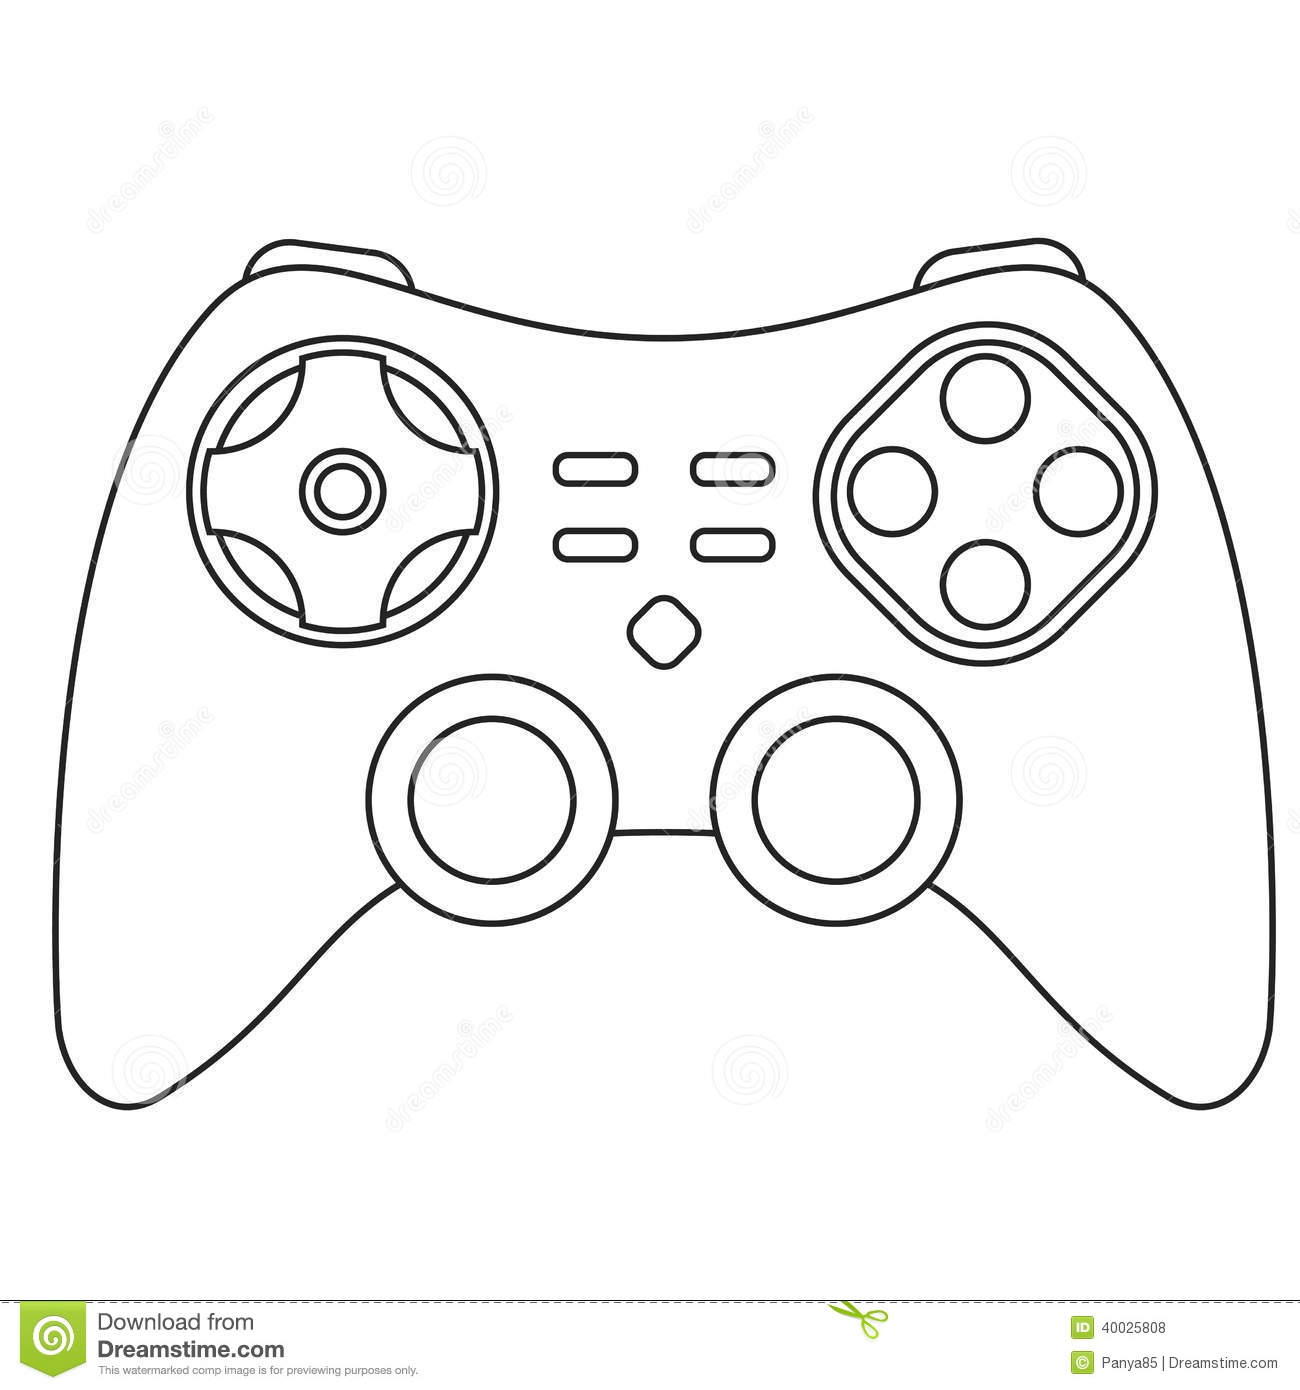 Icone De Manette Illustration De Vecteur